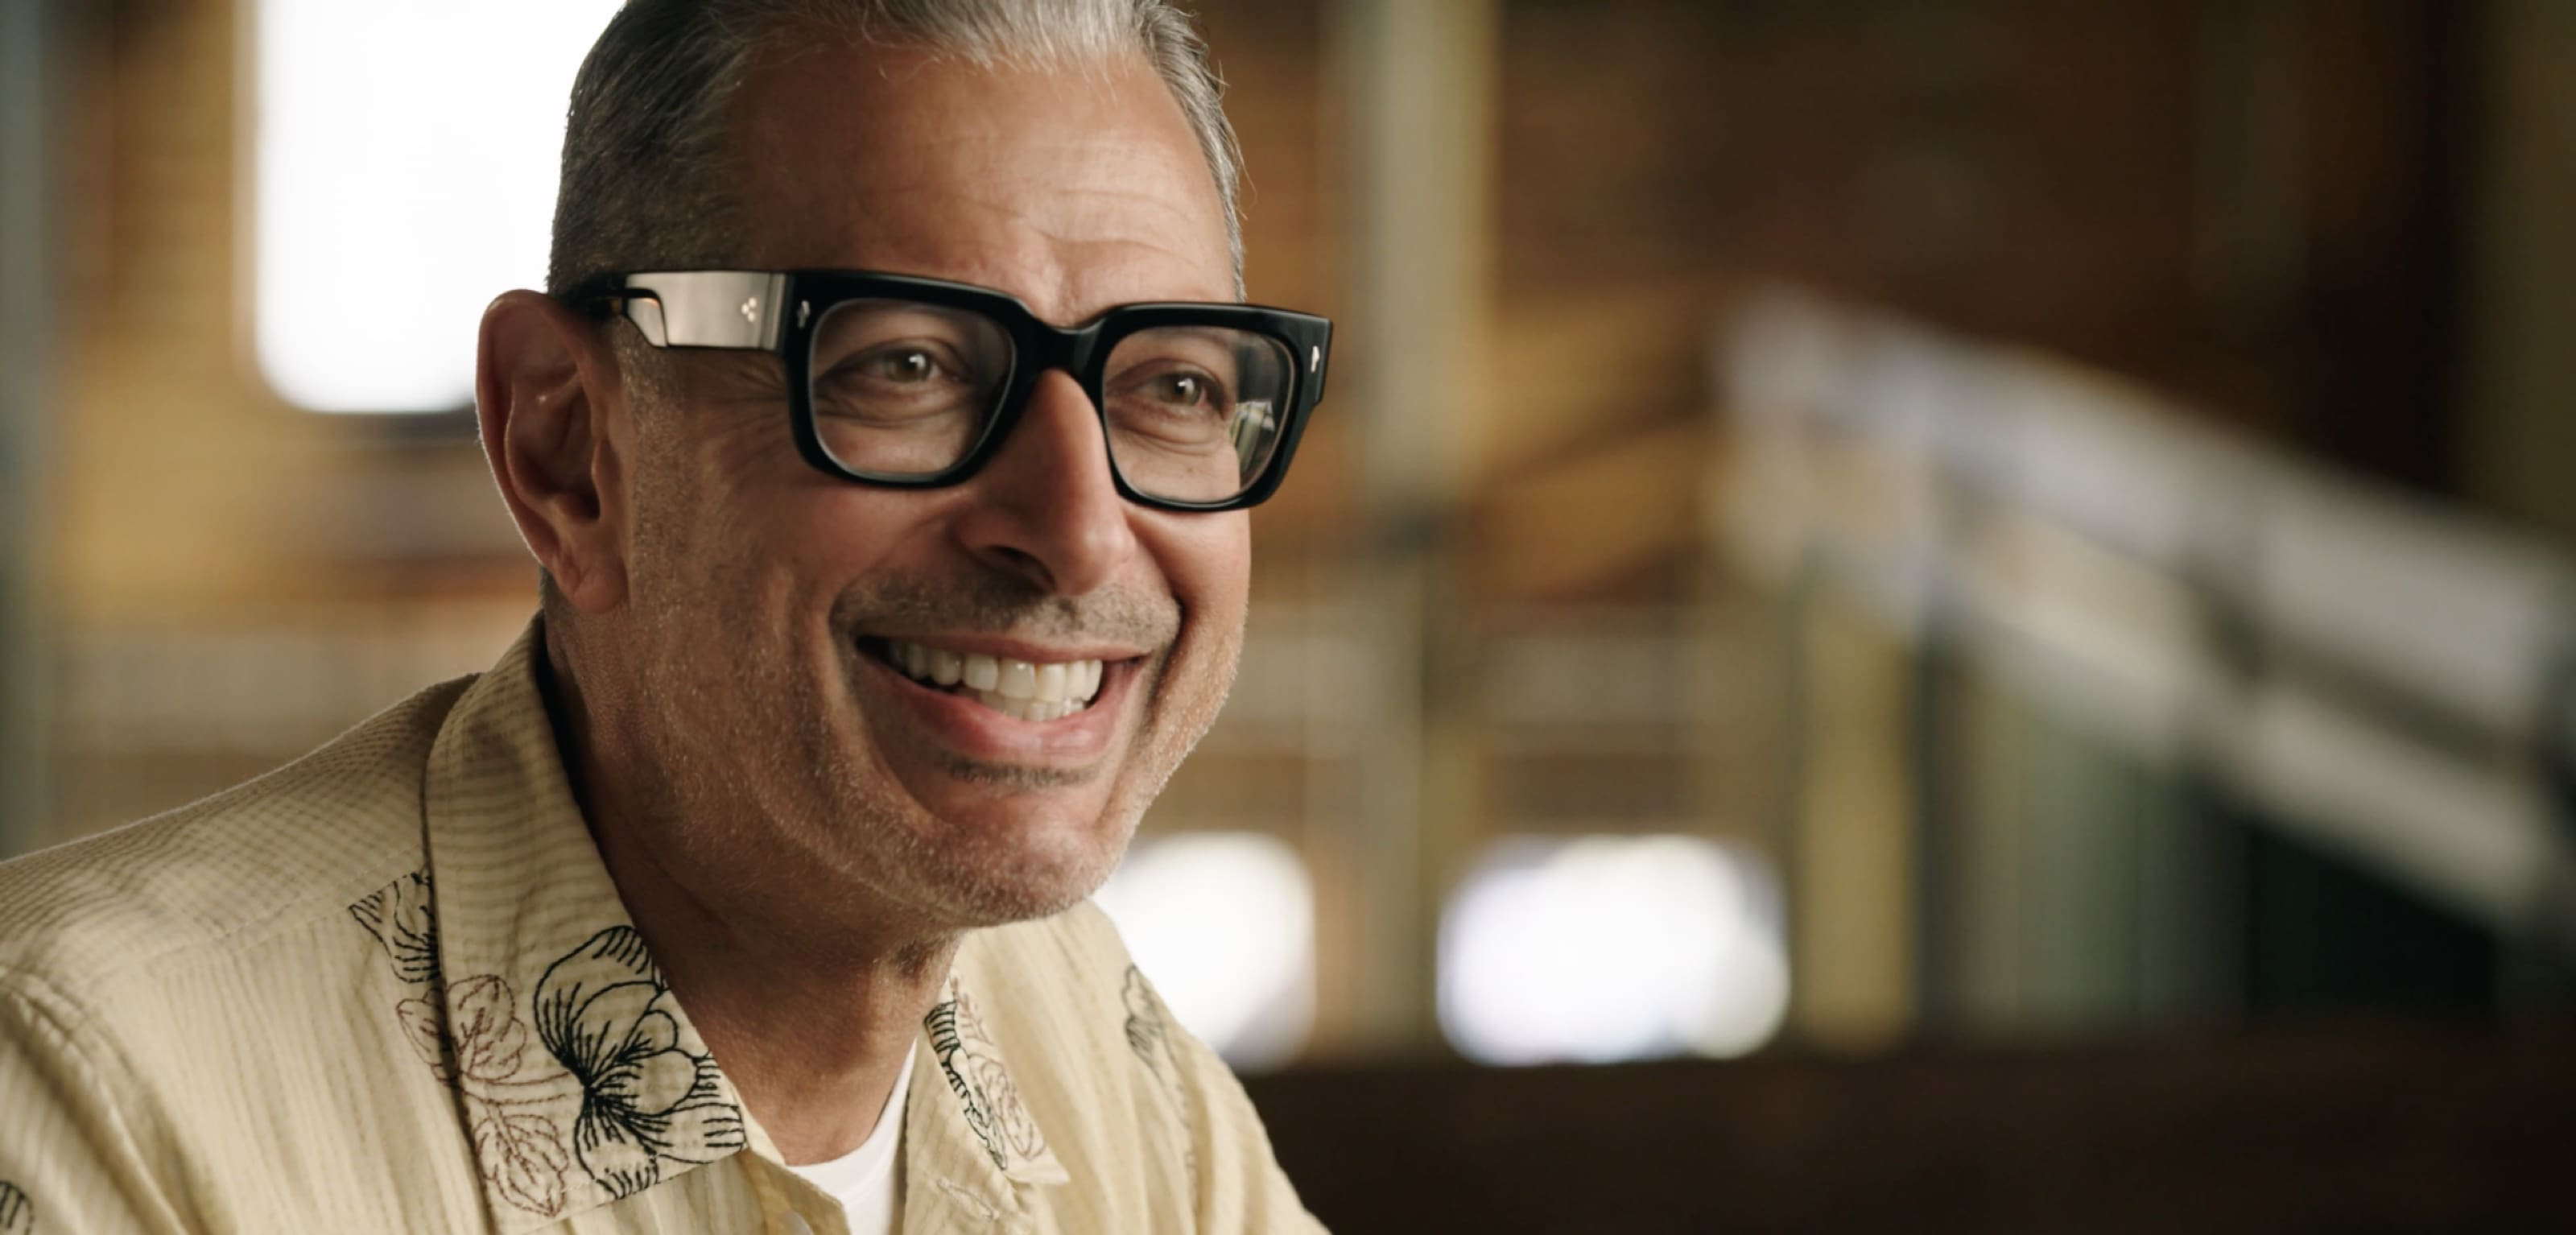 A still image from The World According to Jeff Goldblum